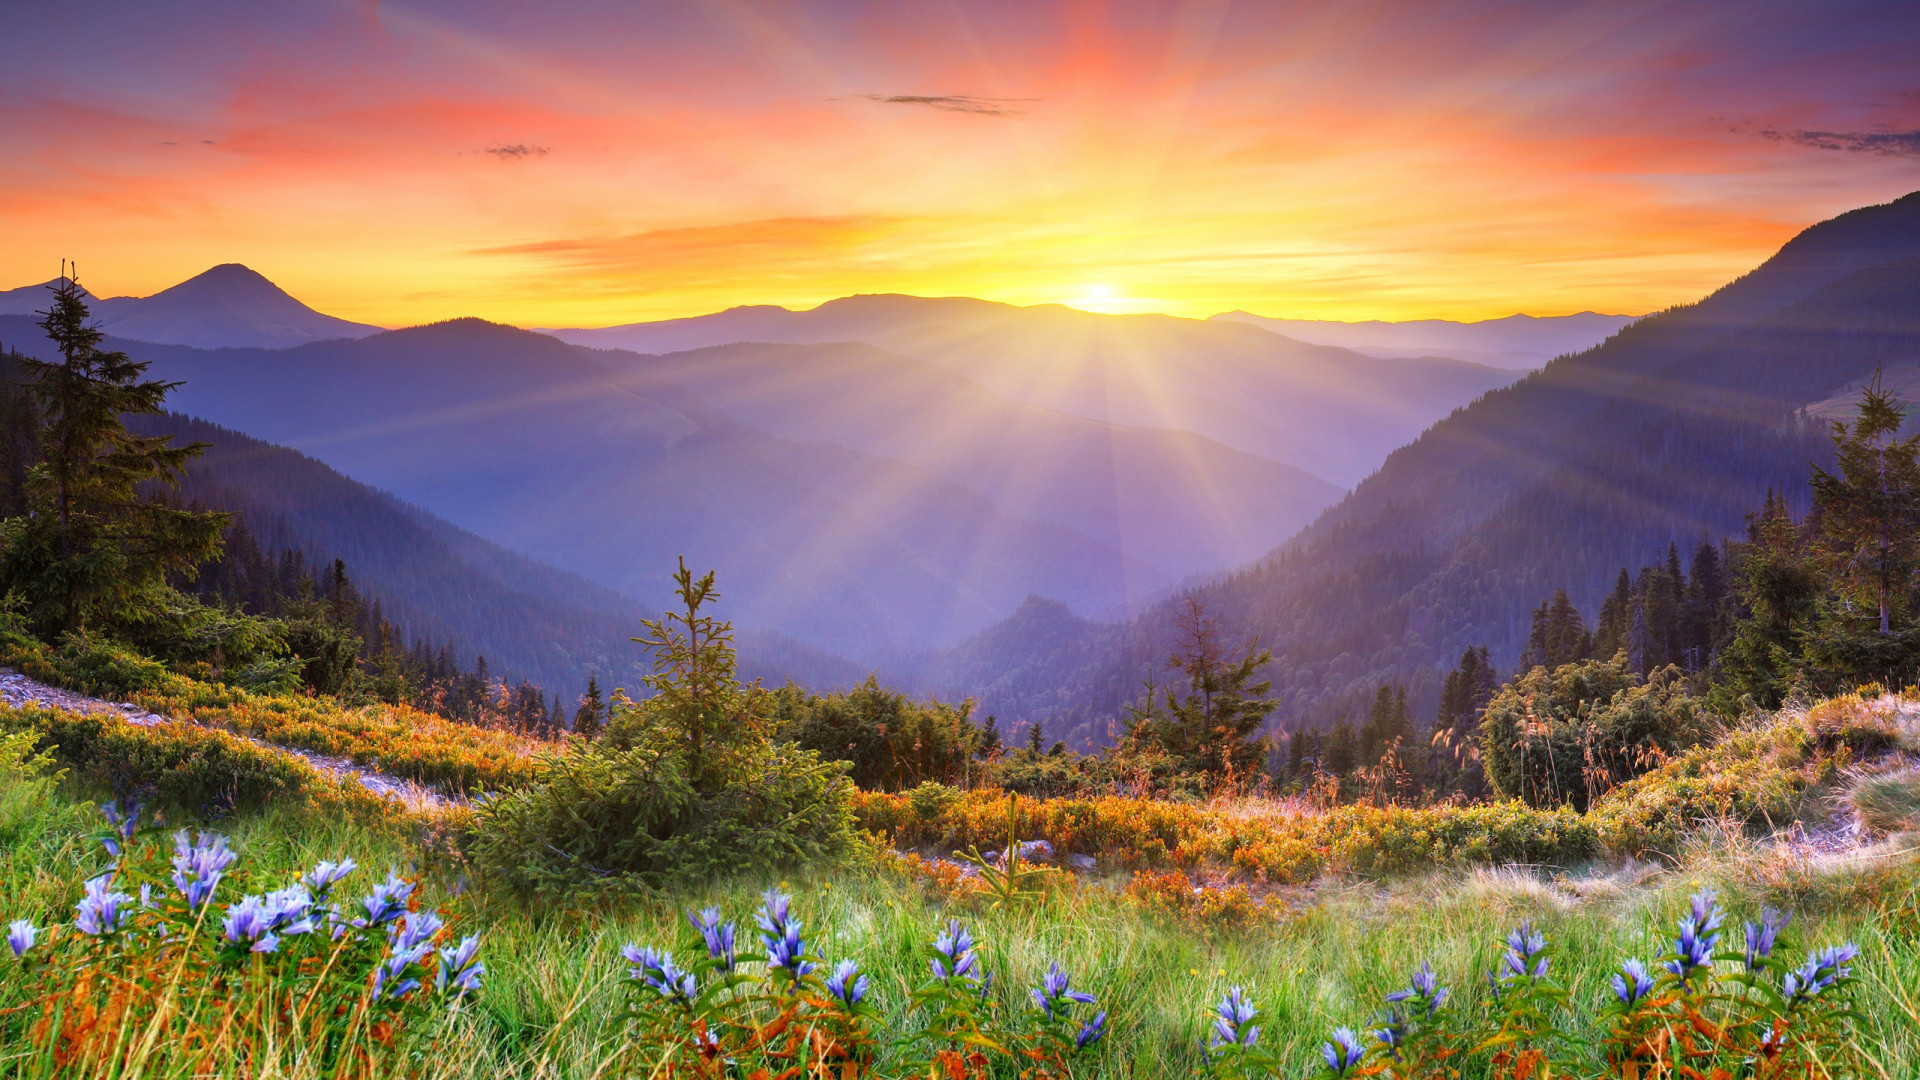 1920x1080 Mountain, Sunrise, Wilderness, Vegetation, Great Smoky Mountains Wallpaper  in  Resolution